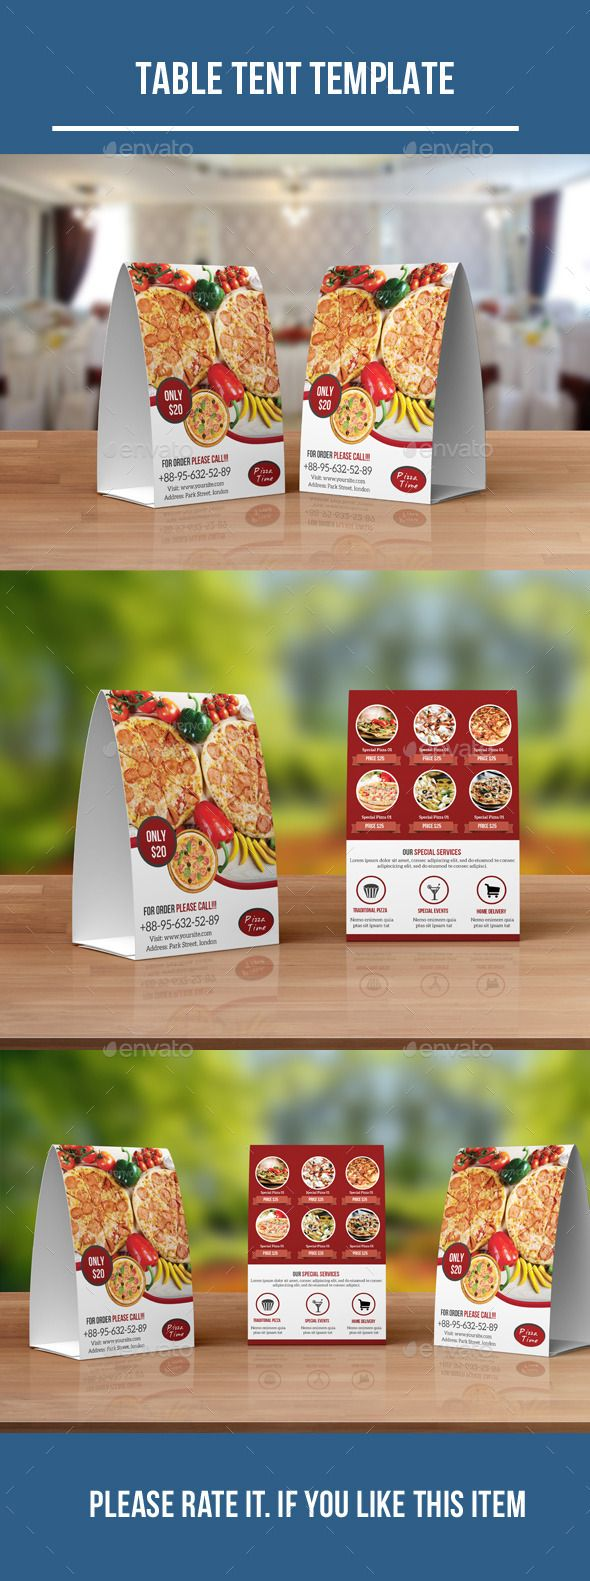 Food Menu Table Tent & 75 best table tent images on Pinterest | Table tents Food menu ...